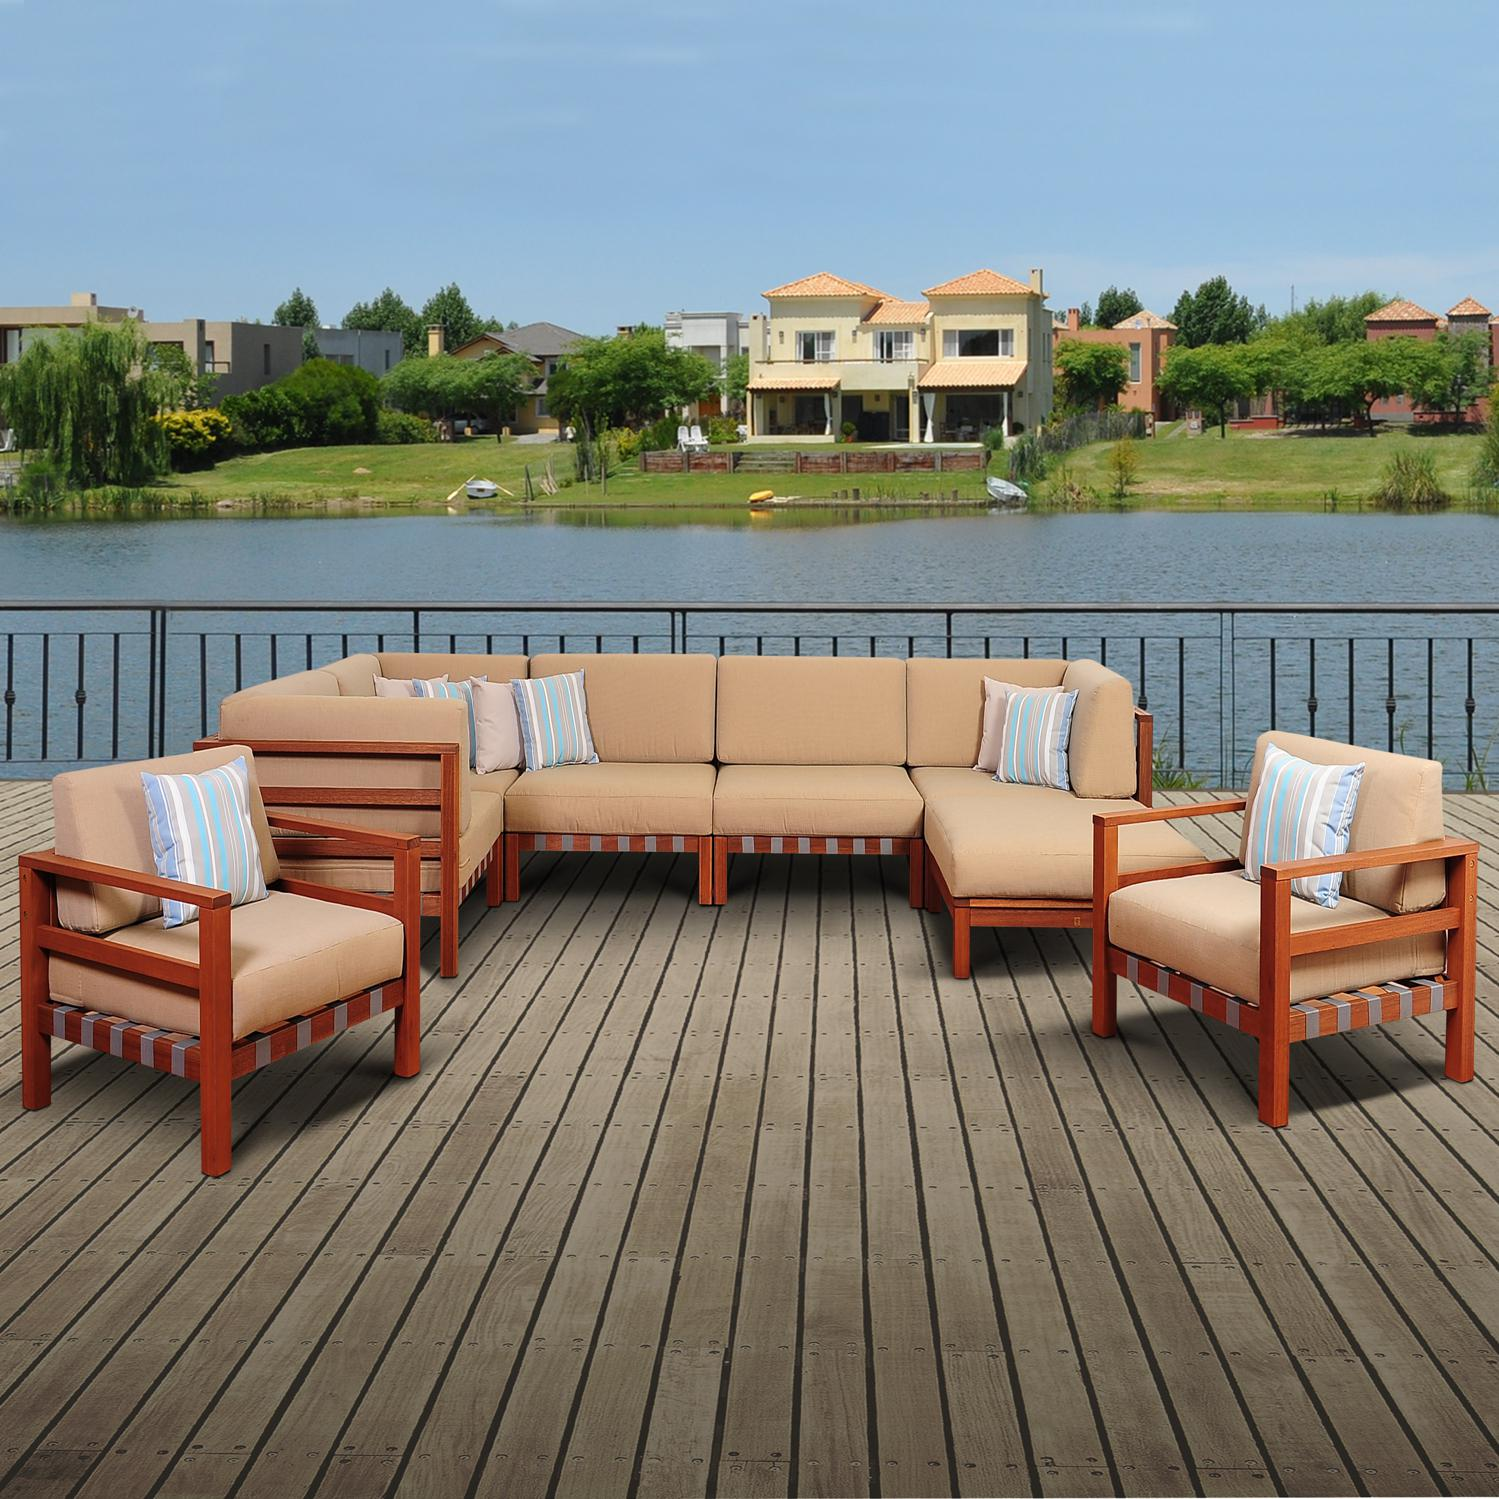 Picture of Amazonia Derbyshire 6-Person Eucalyptus Patio Sectional Set With Two Club Chairs By Jamie Durie